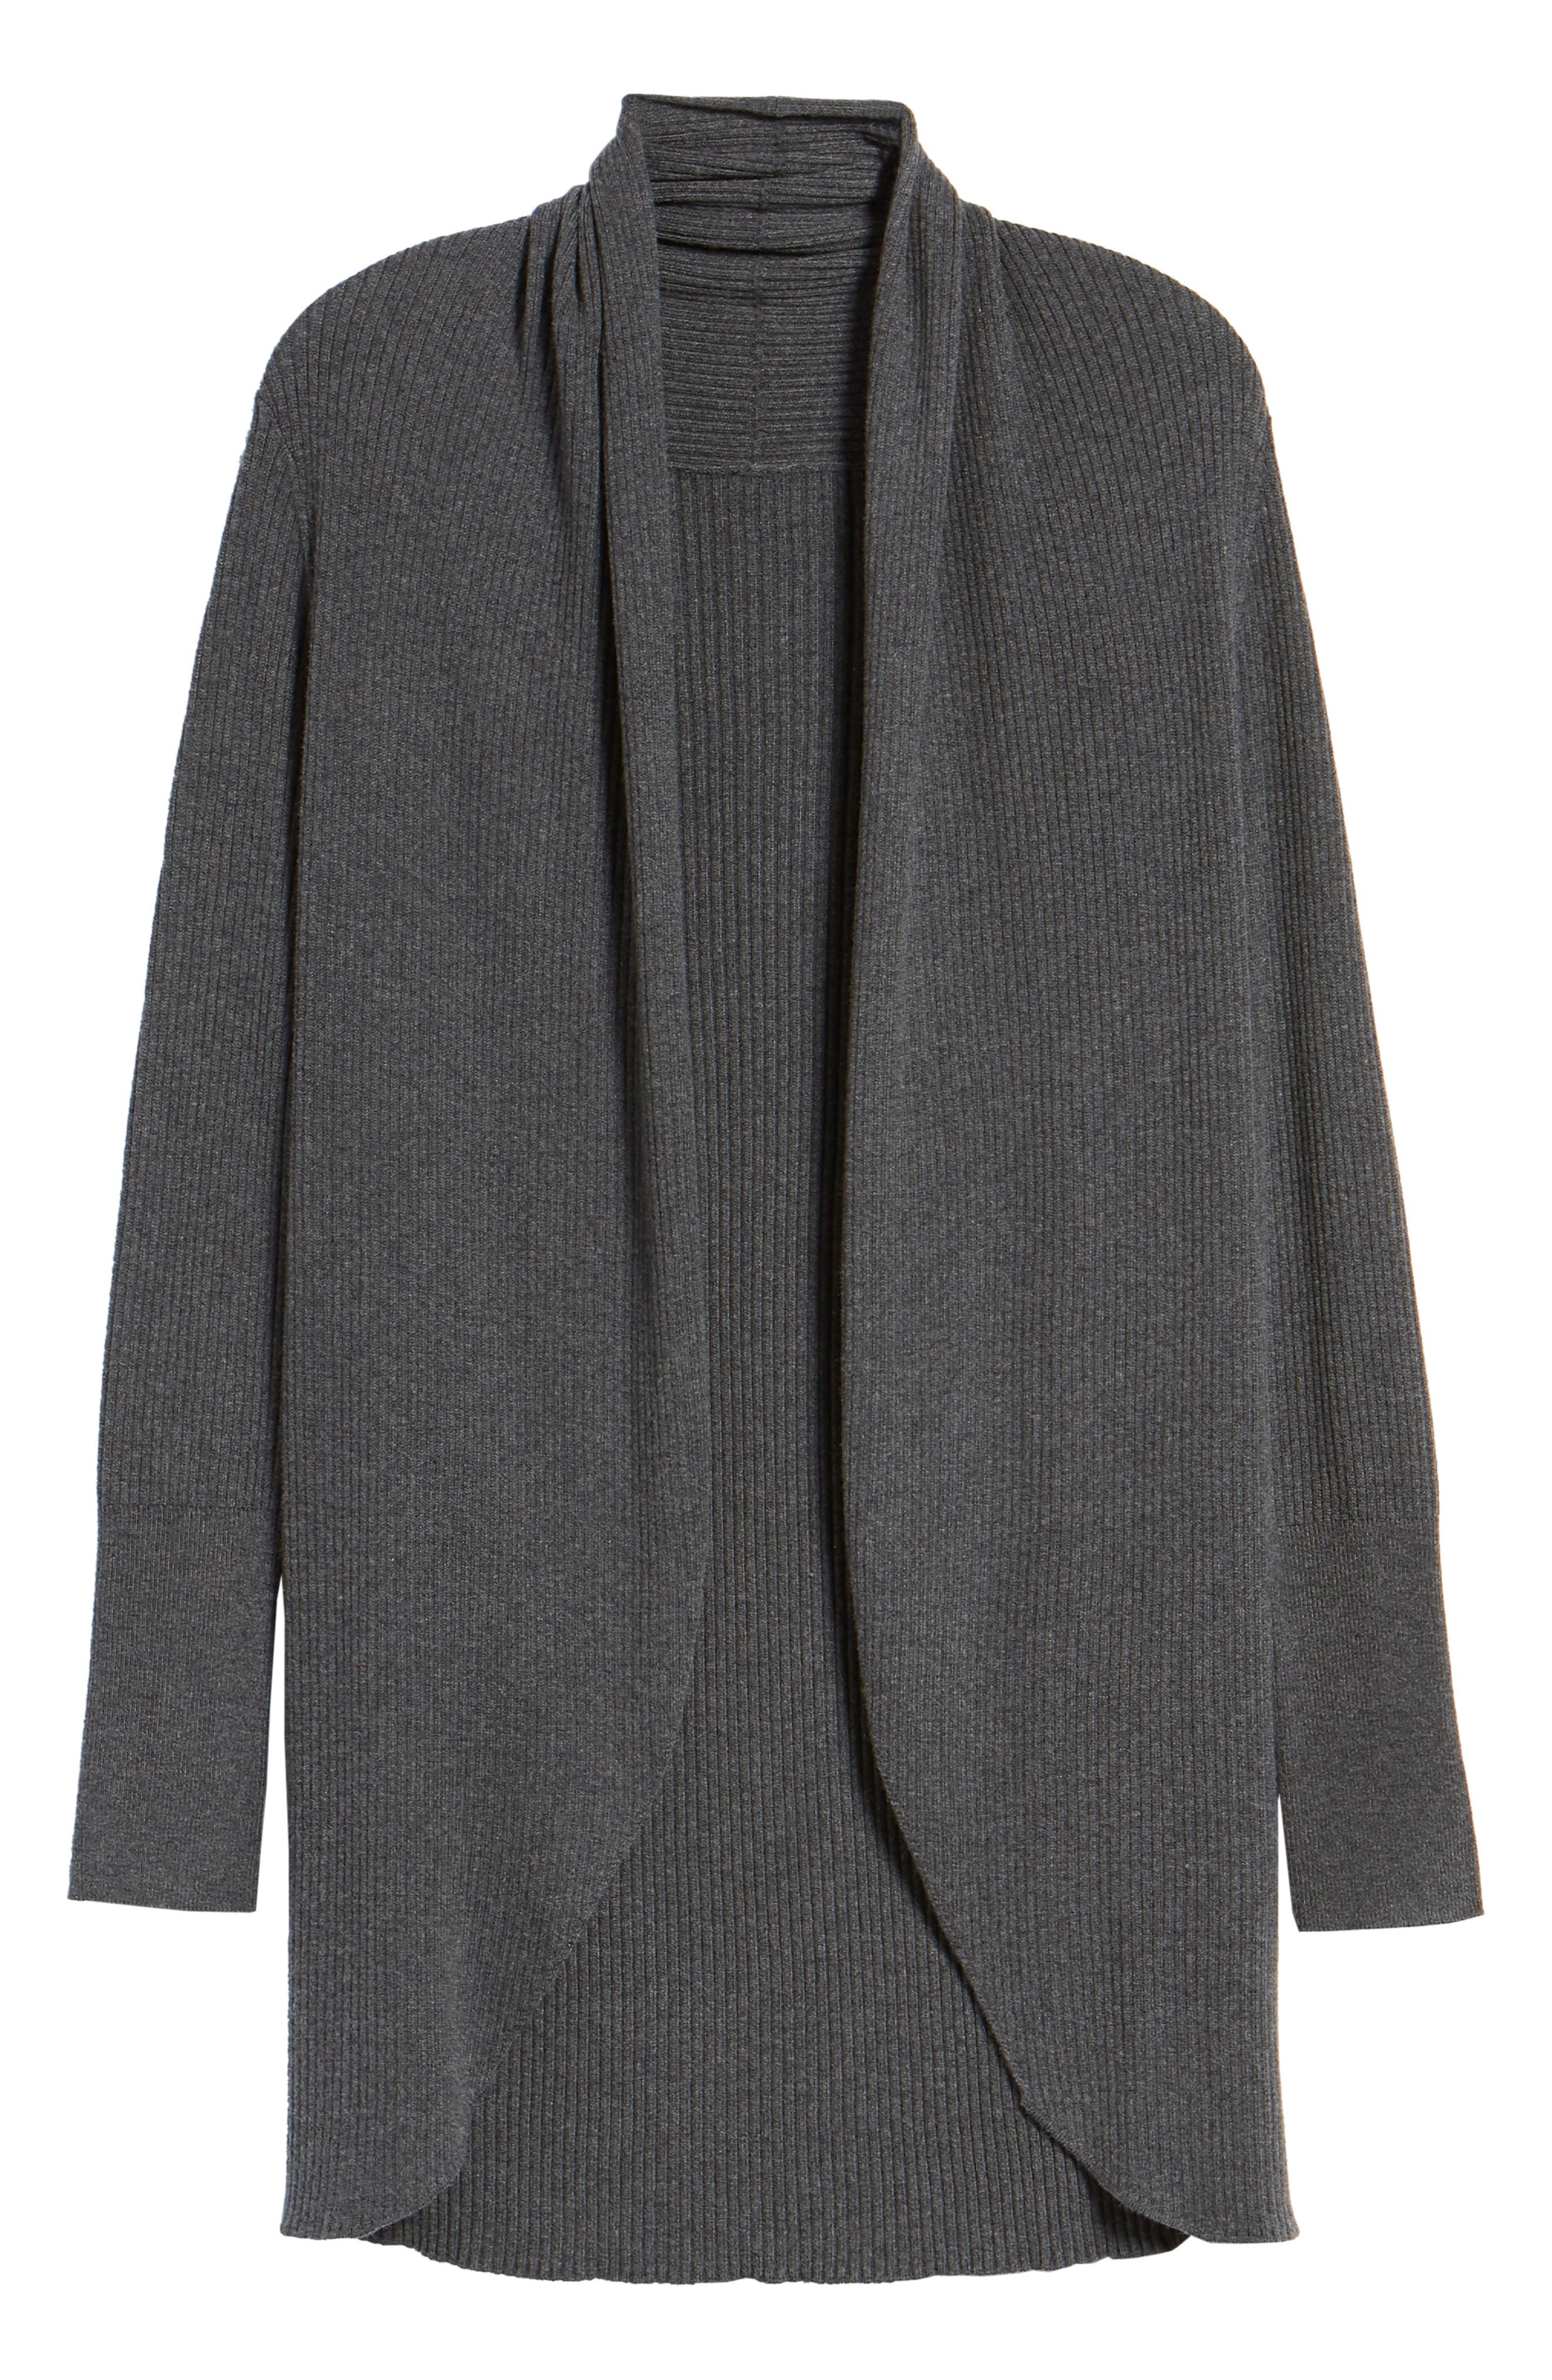 Ribbed Shawl Cocoon Sweater,                             Alternate thumbnail 7, color,                             GREY MEDIUM CHARCOAL HEATHER